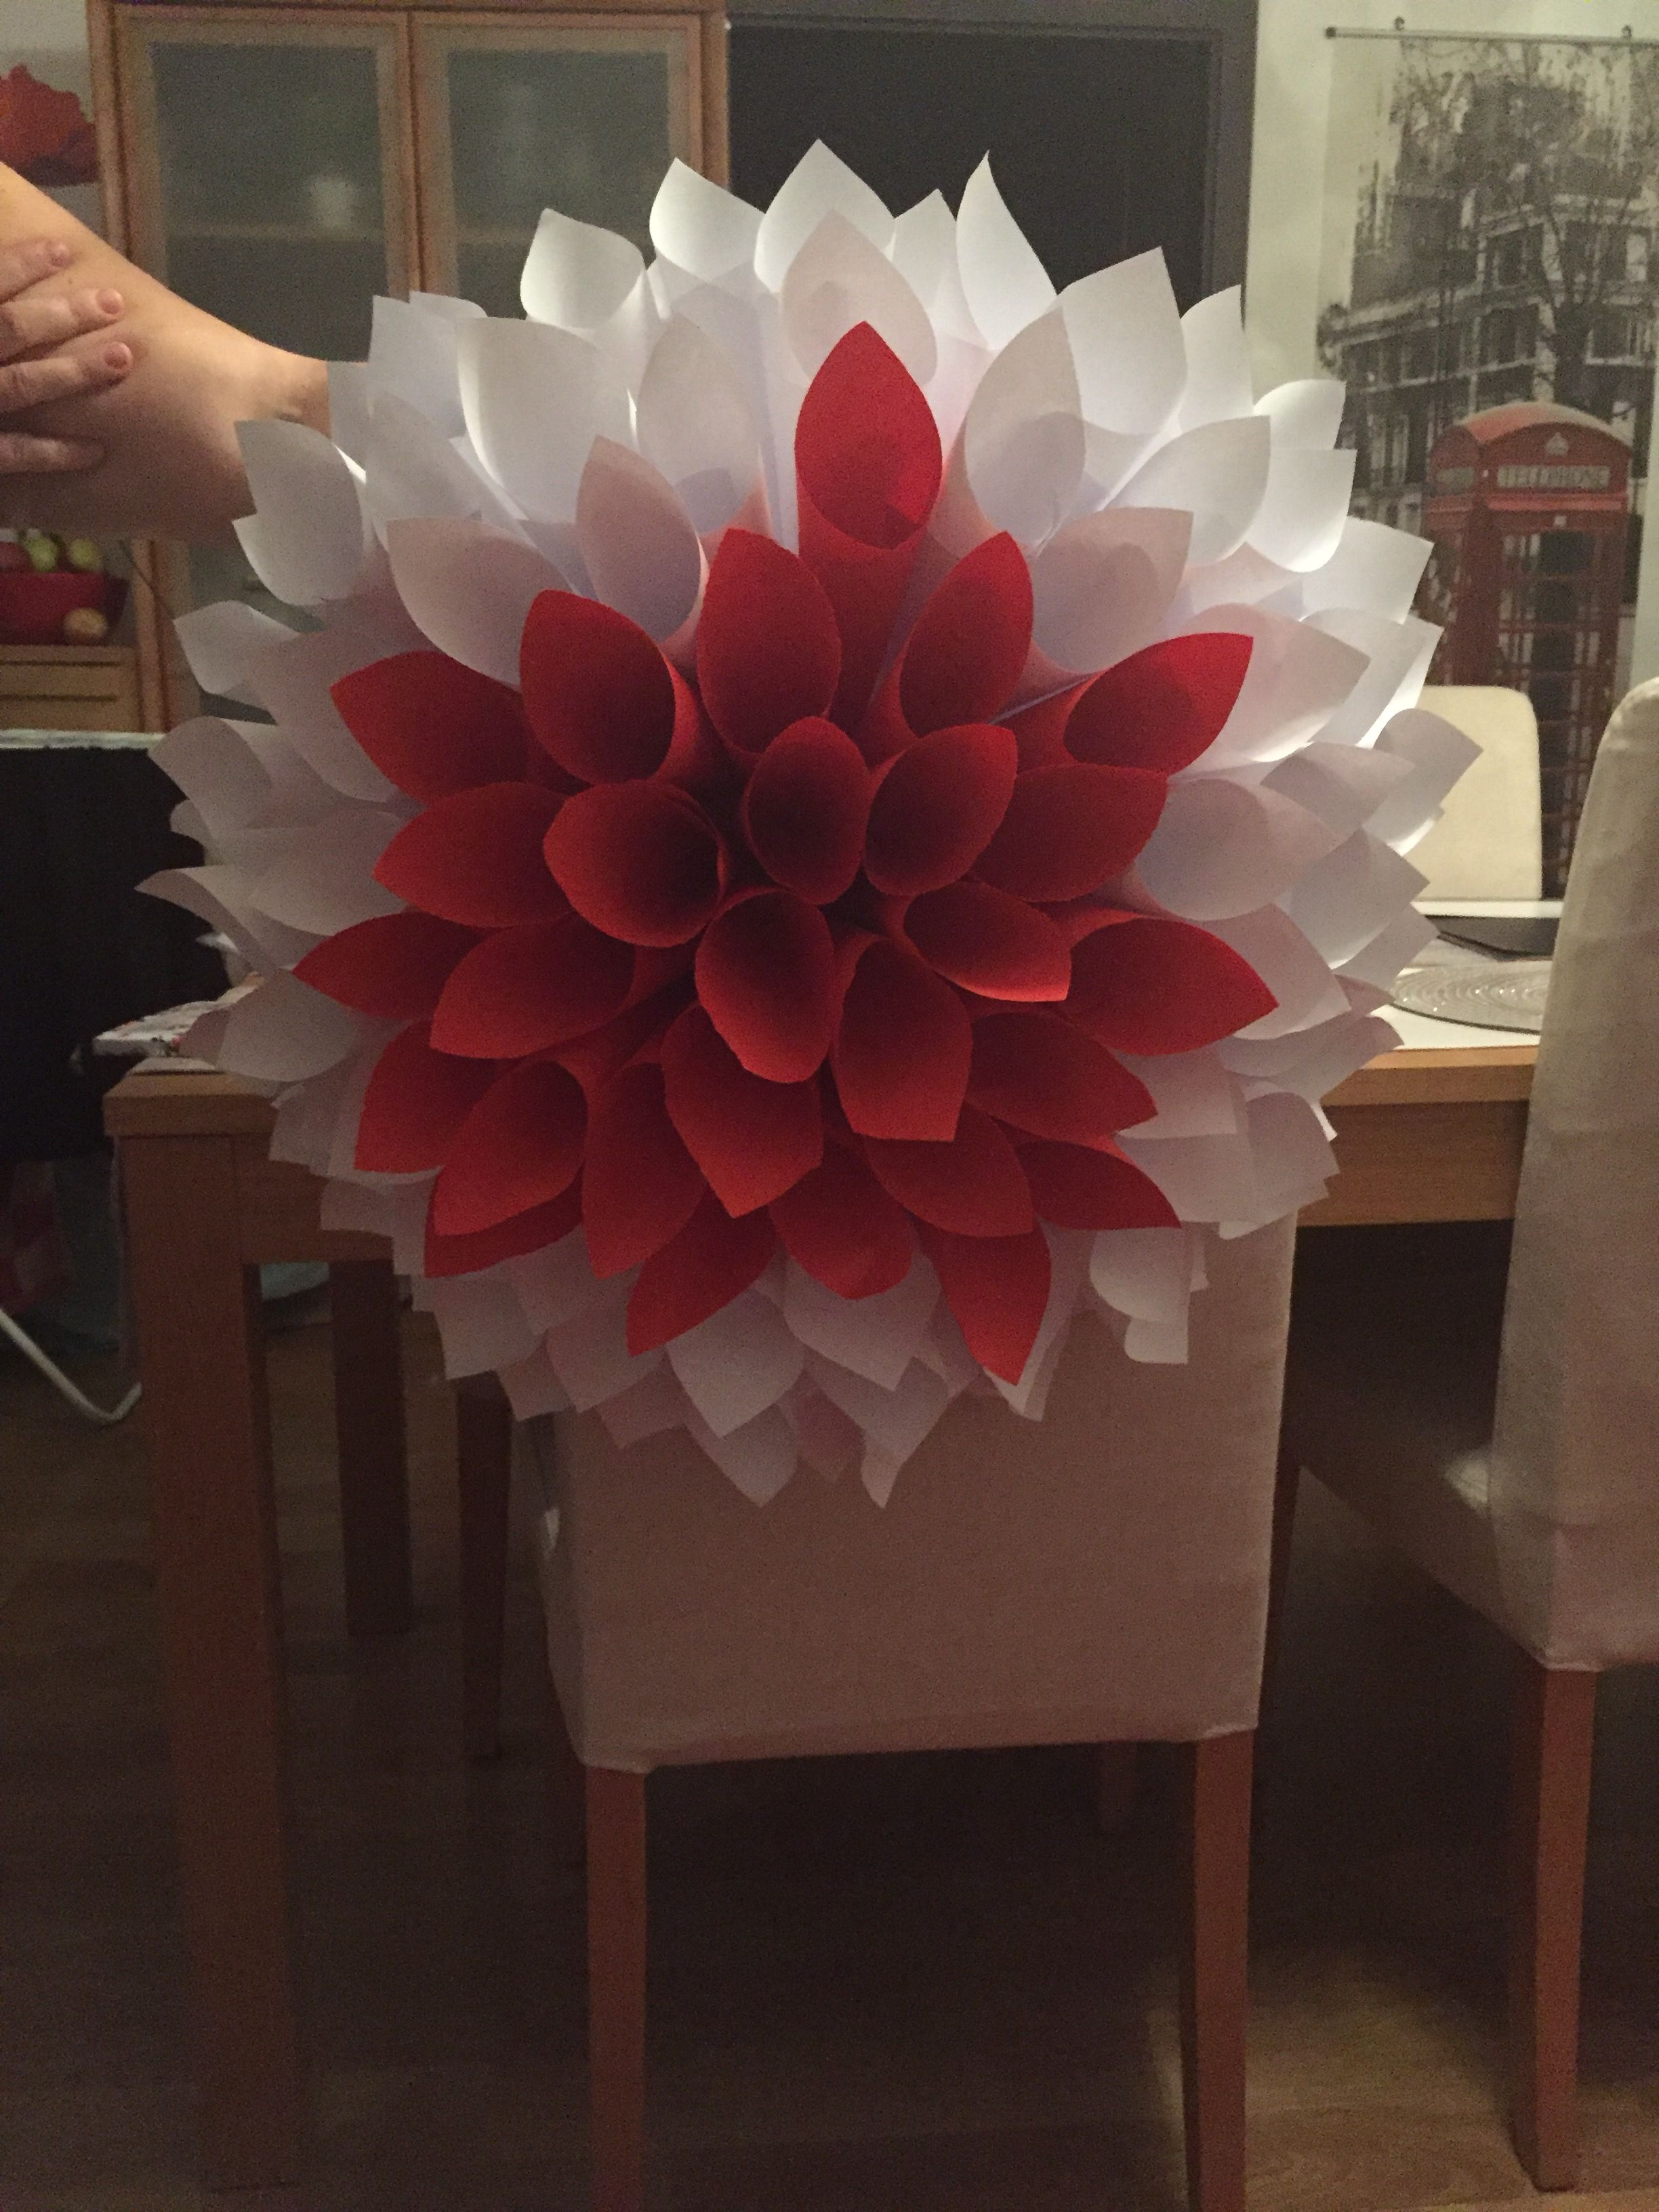 Pin By Inta Augustova On Swieto Niepodleglosci Diy And Crafts Paper Flowers Crafts For Kids